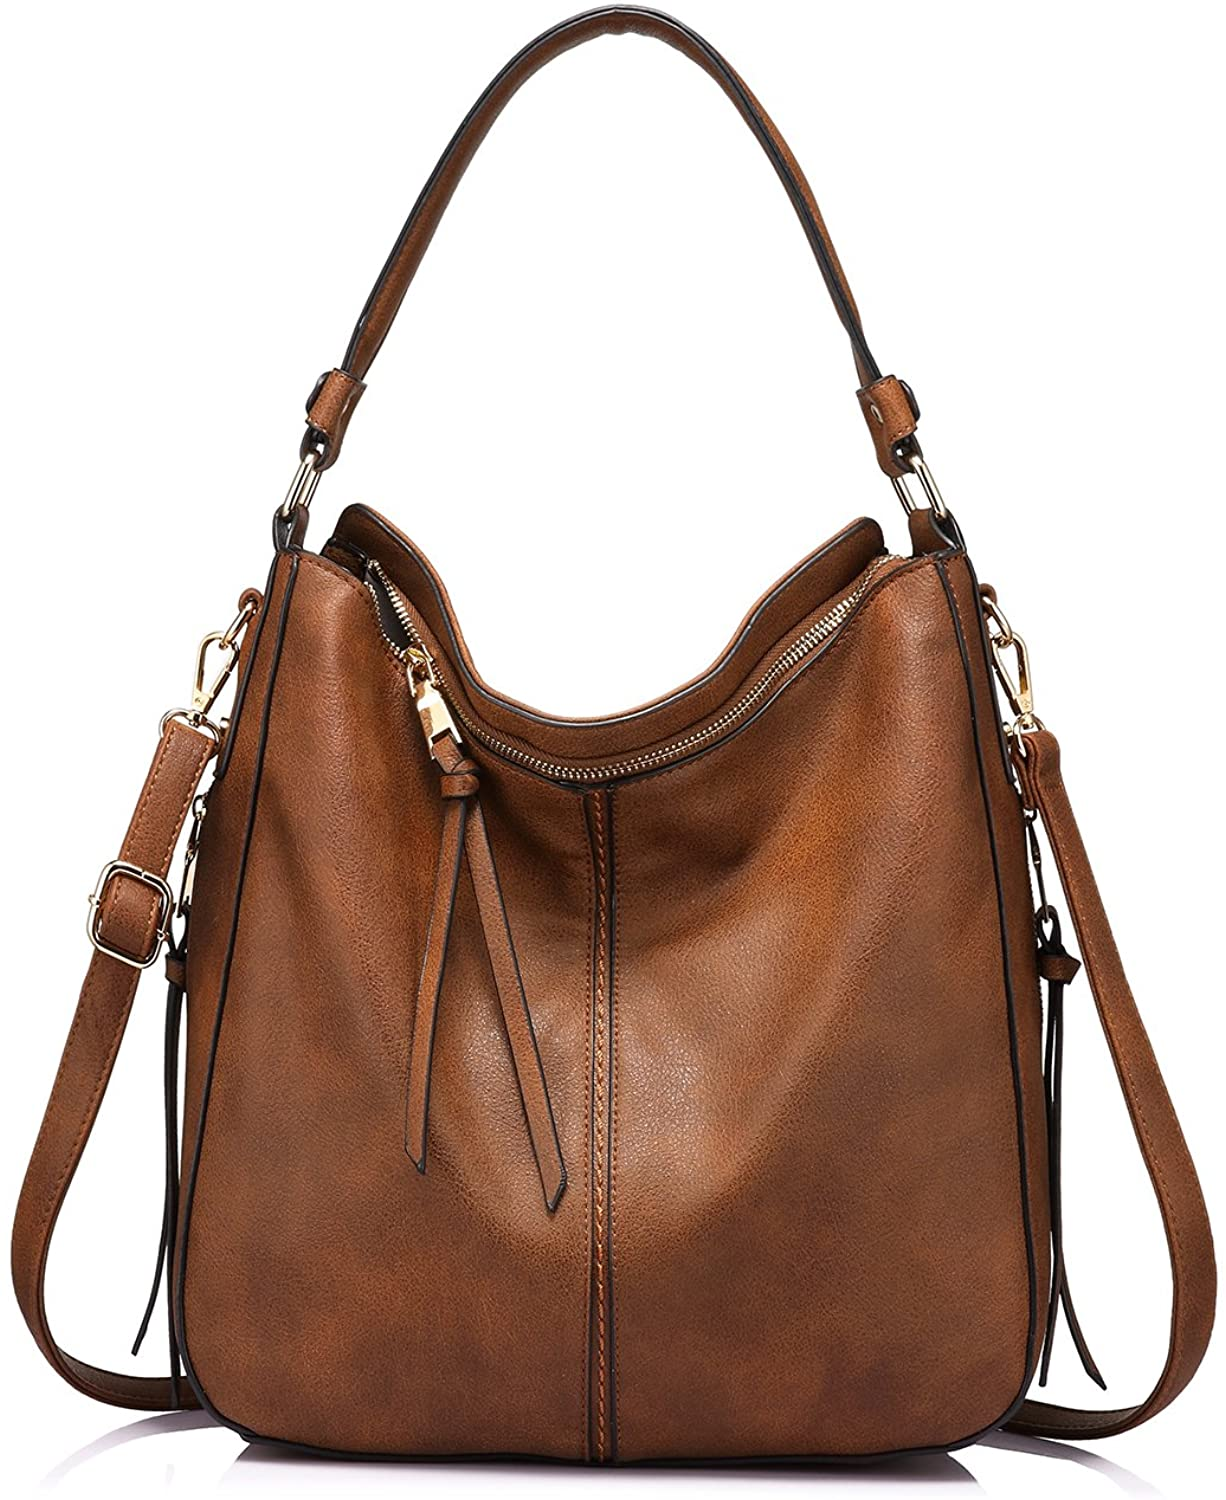 Realer Hobo Bags for Women Faux Leather Purses and Handbags Large Hobo Purse with Tassel